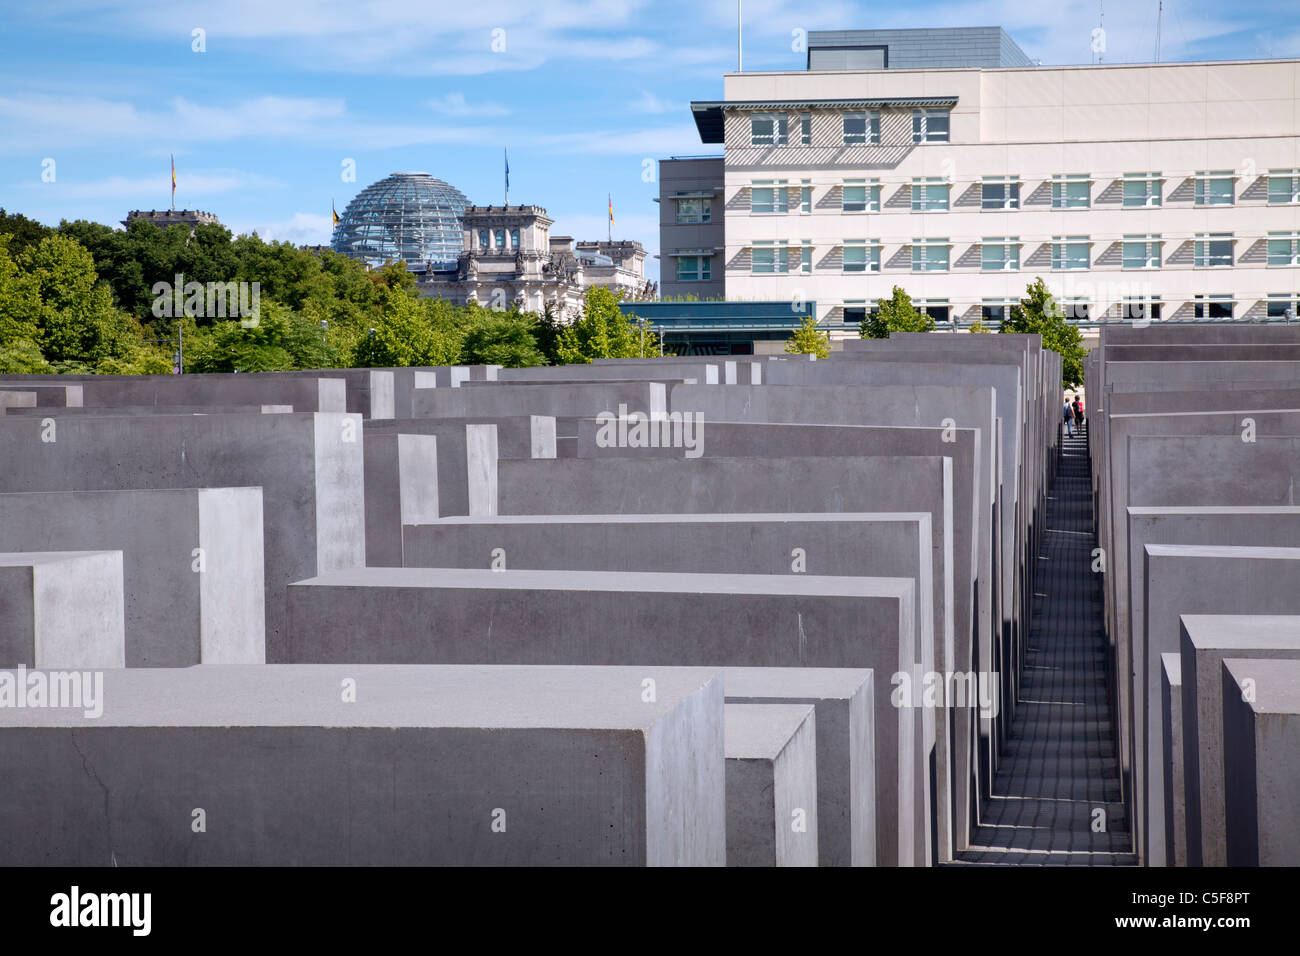 Memorial To The Murdered Jews Of Europe, Berlin, Germany - Stock Image